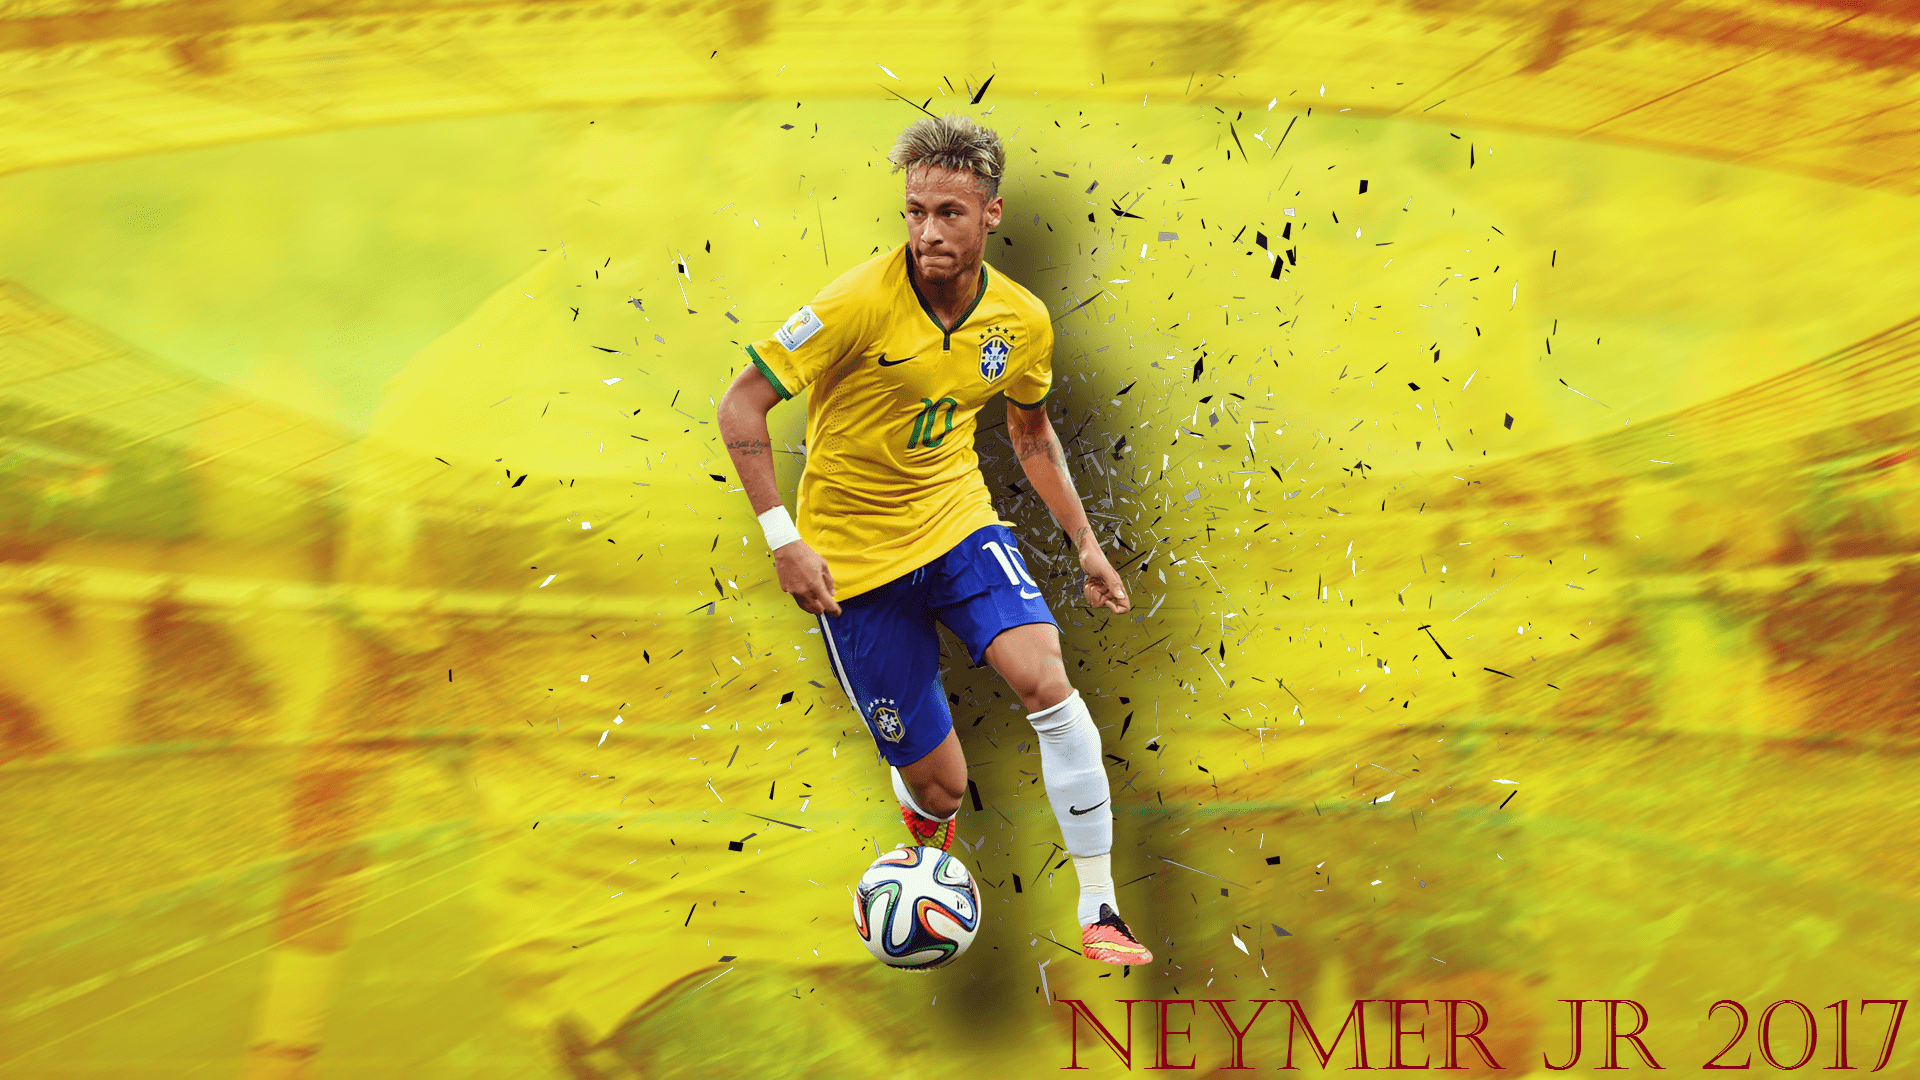 Hd wallpaper neymar - Hd Wallpaper Neymar 49